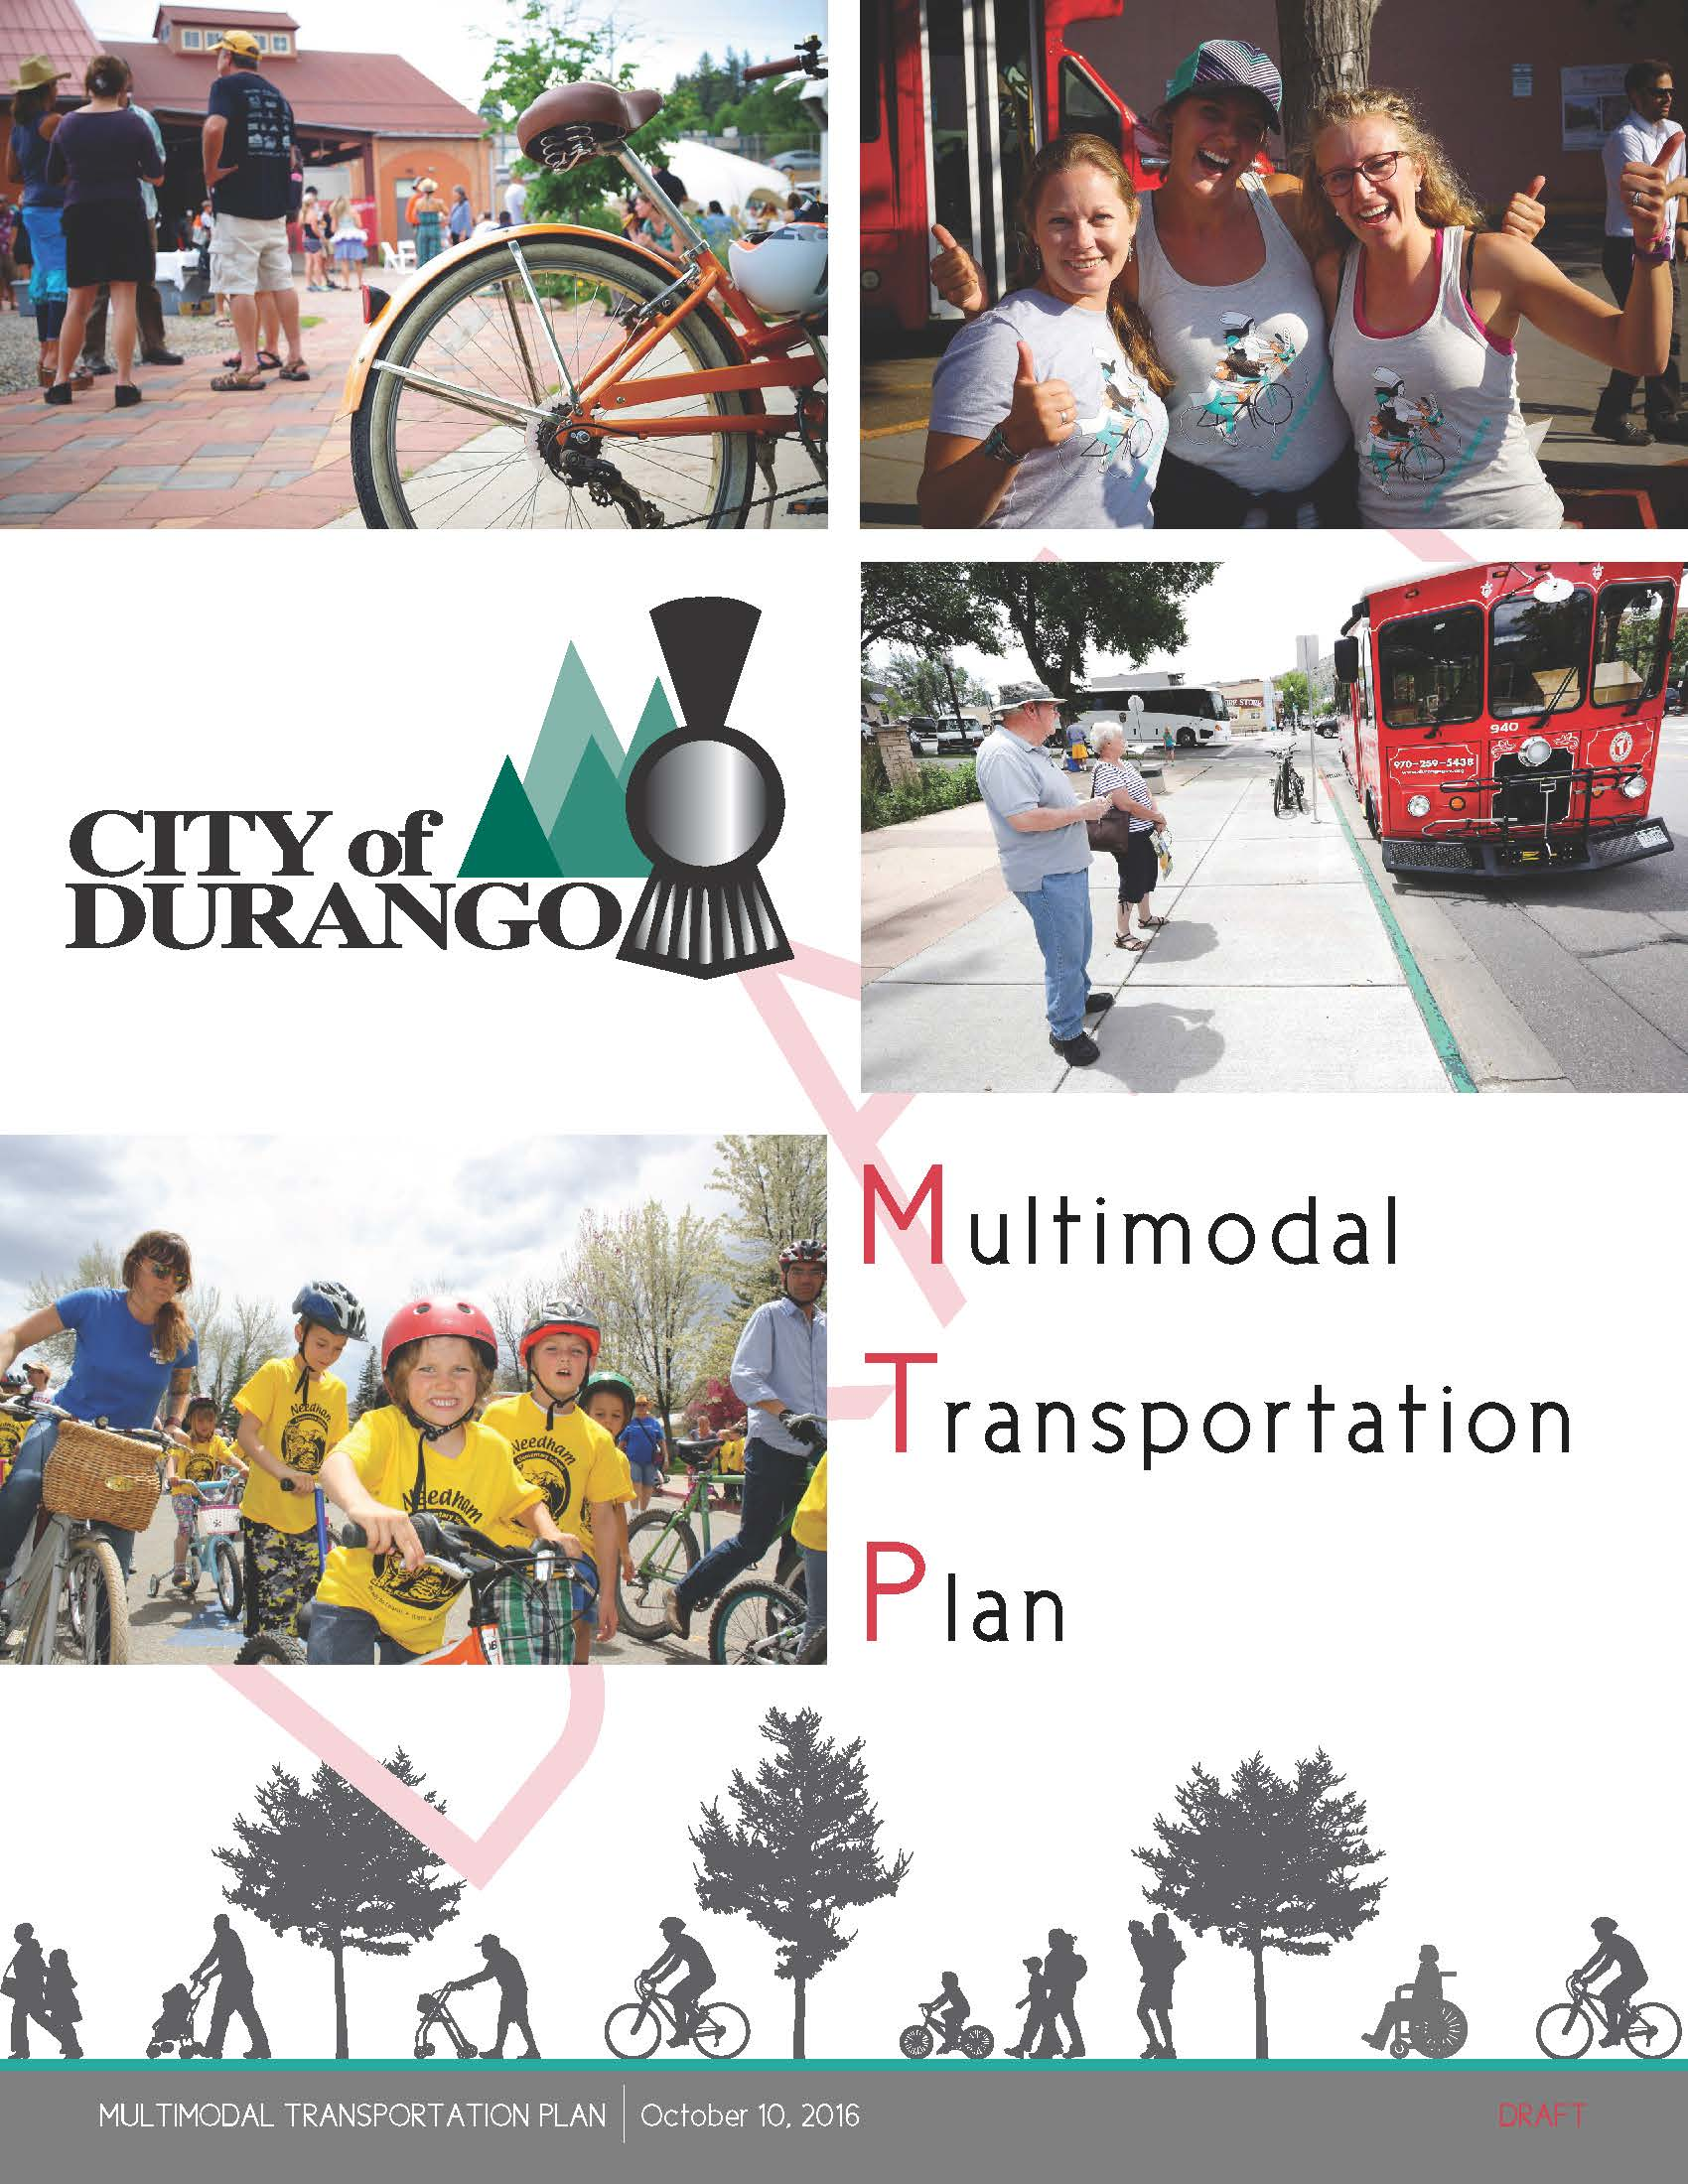 Multimodal Transportation Plan